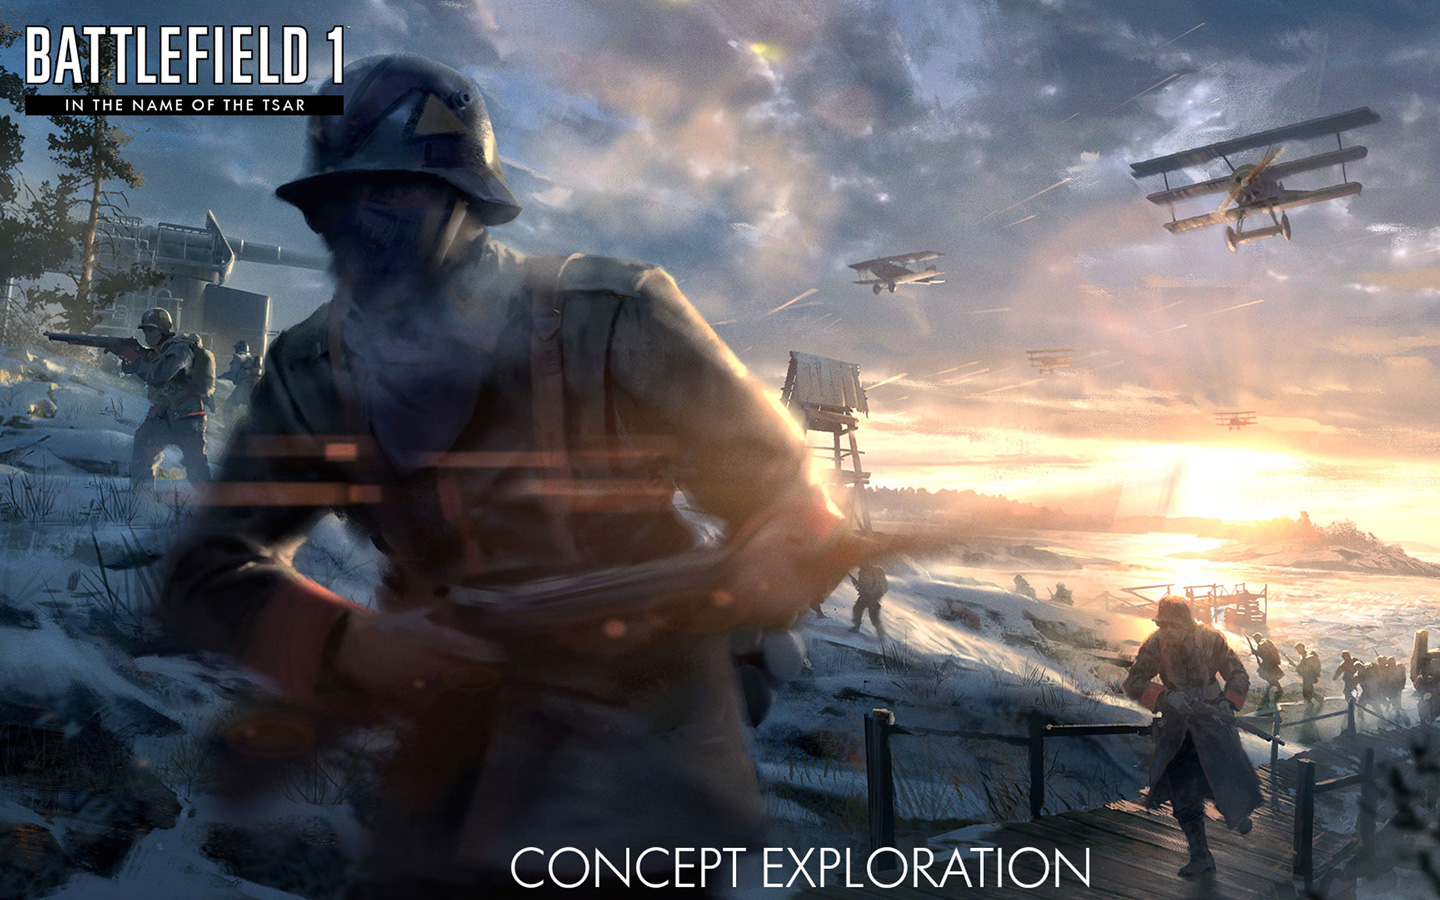 Free Battlefield 1 Wallpaper in 1440x900